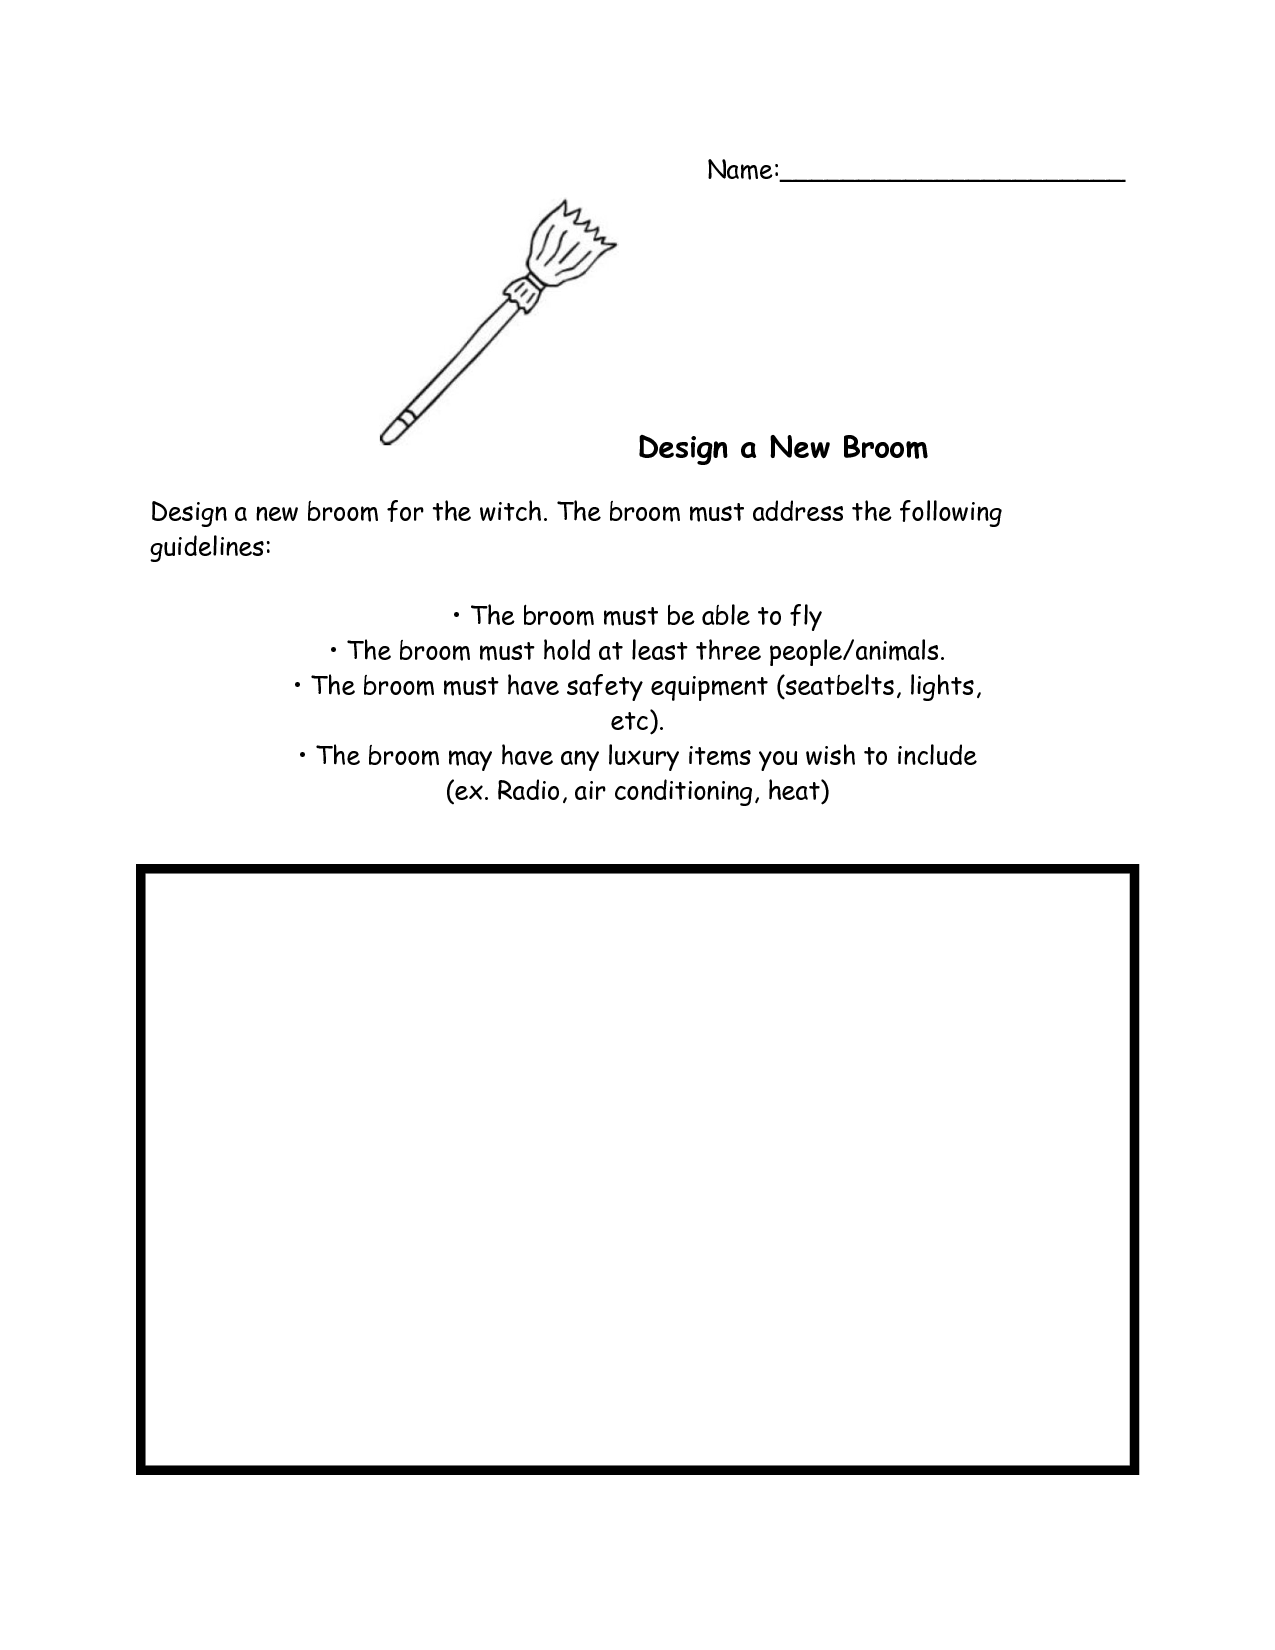 Design Visualization Worksheet